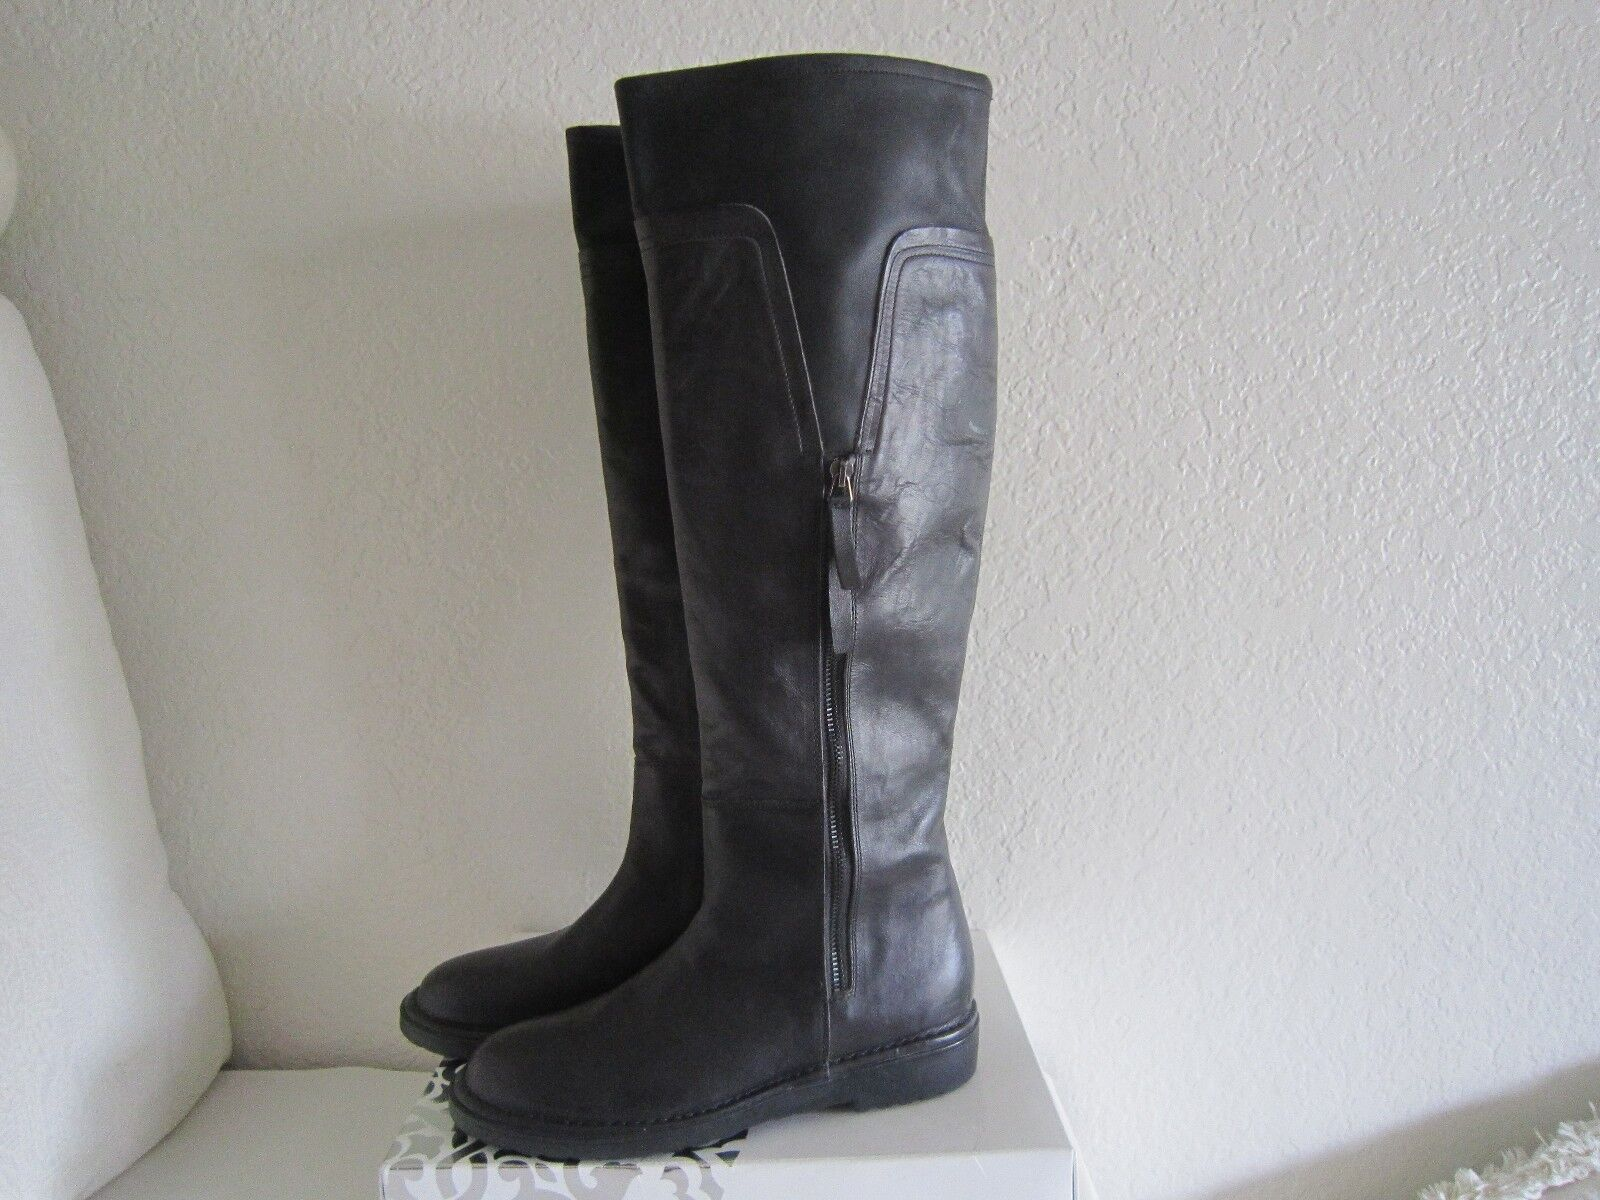 ALBERTO FERMANI FERMANI FERMANI Women's dark brown grey tan Leather Boots Made   Sz 39 US 8 1275f6